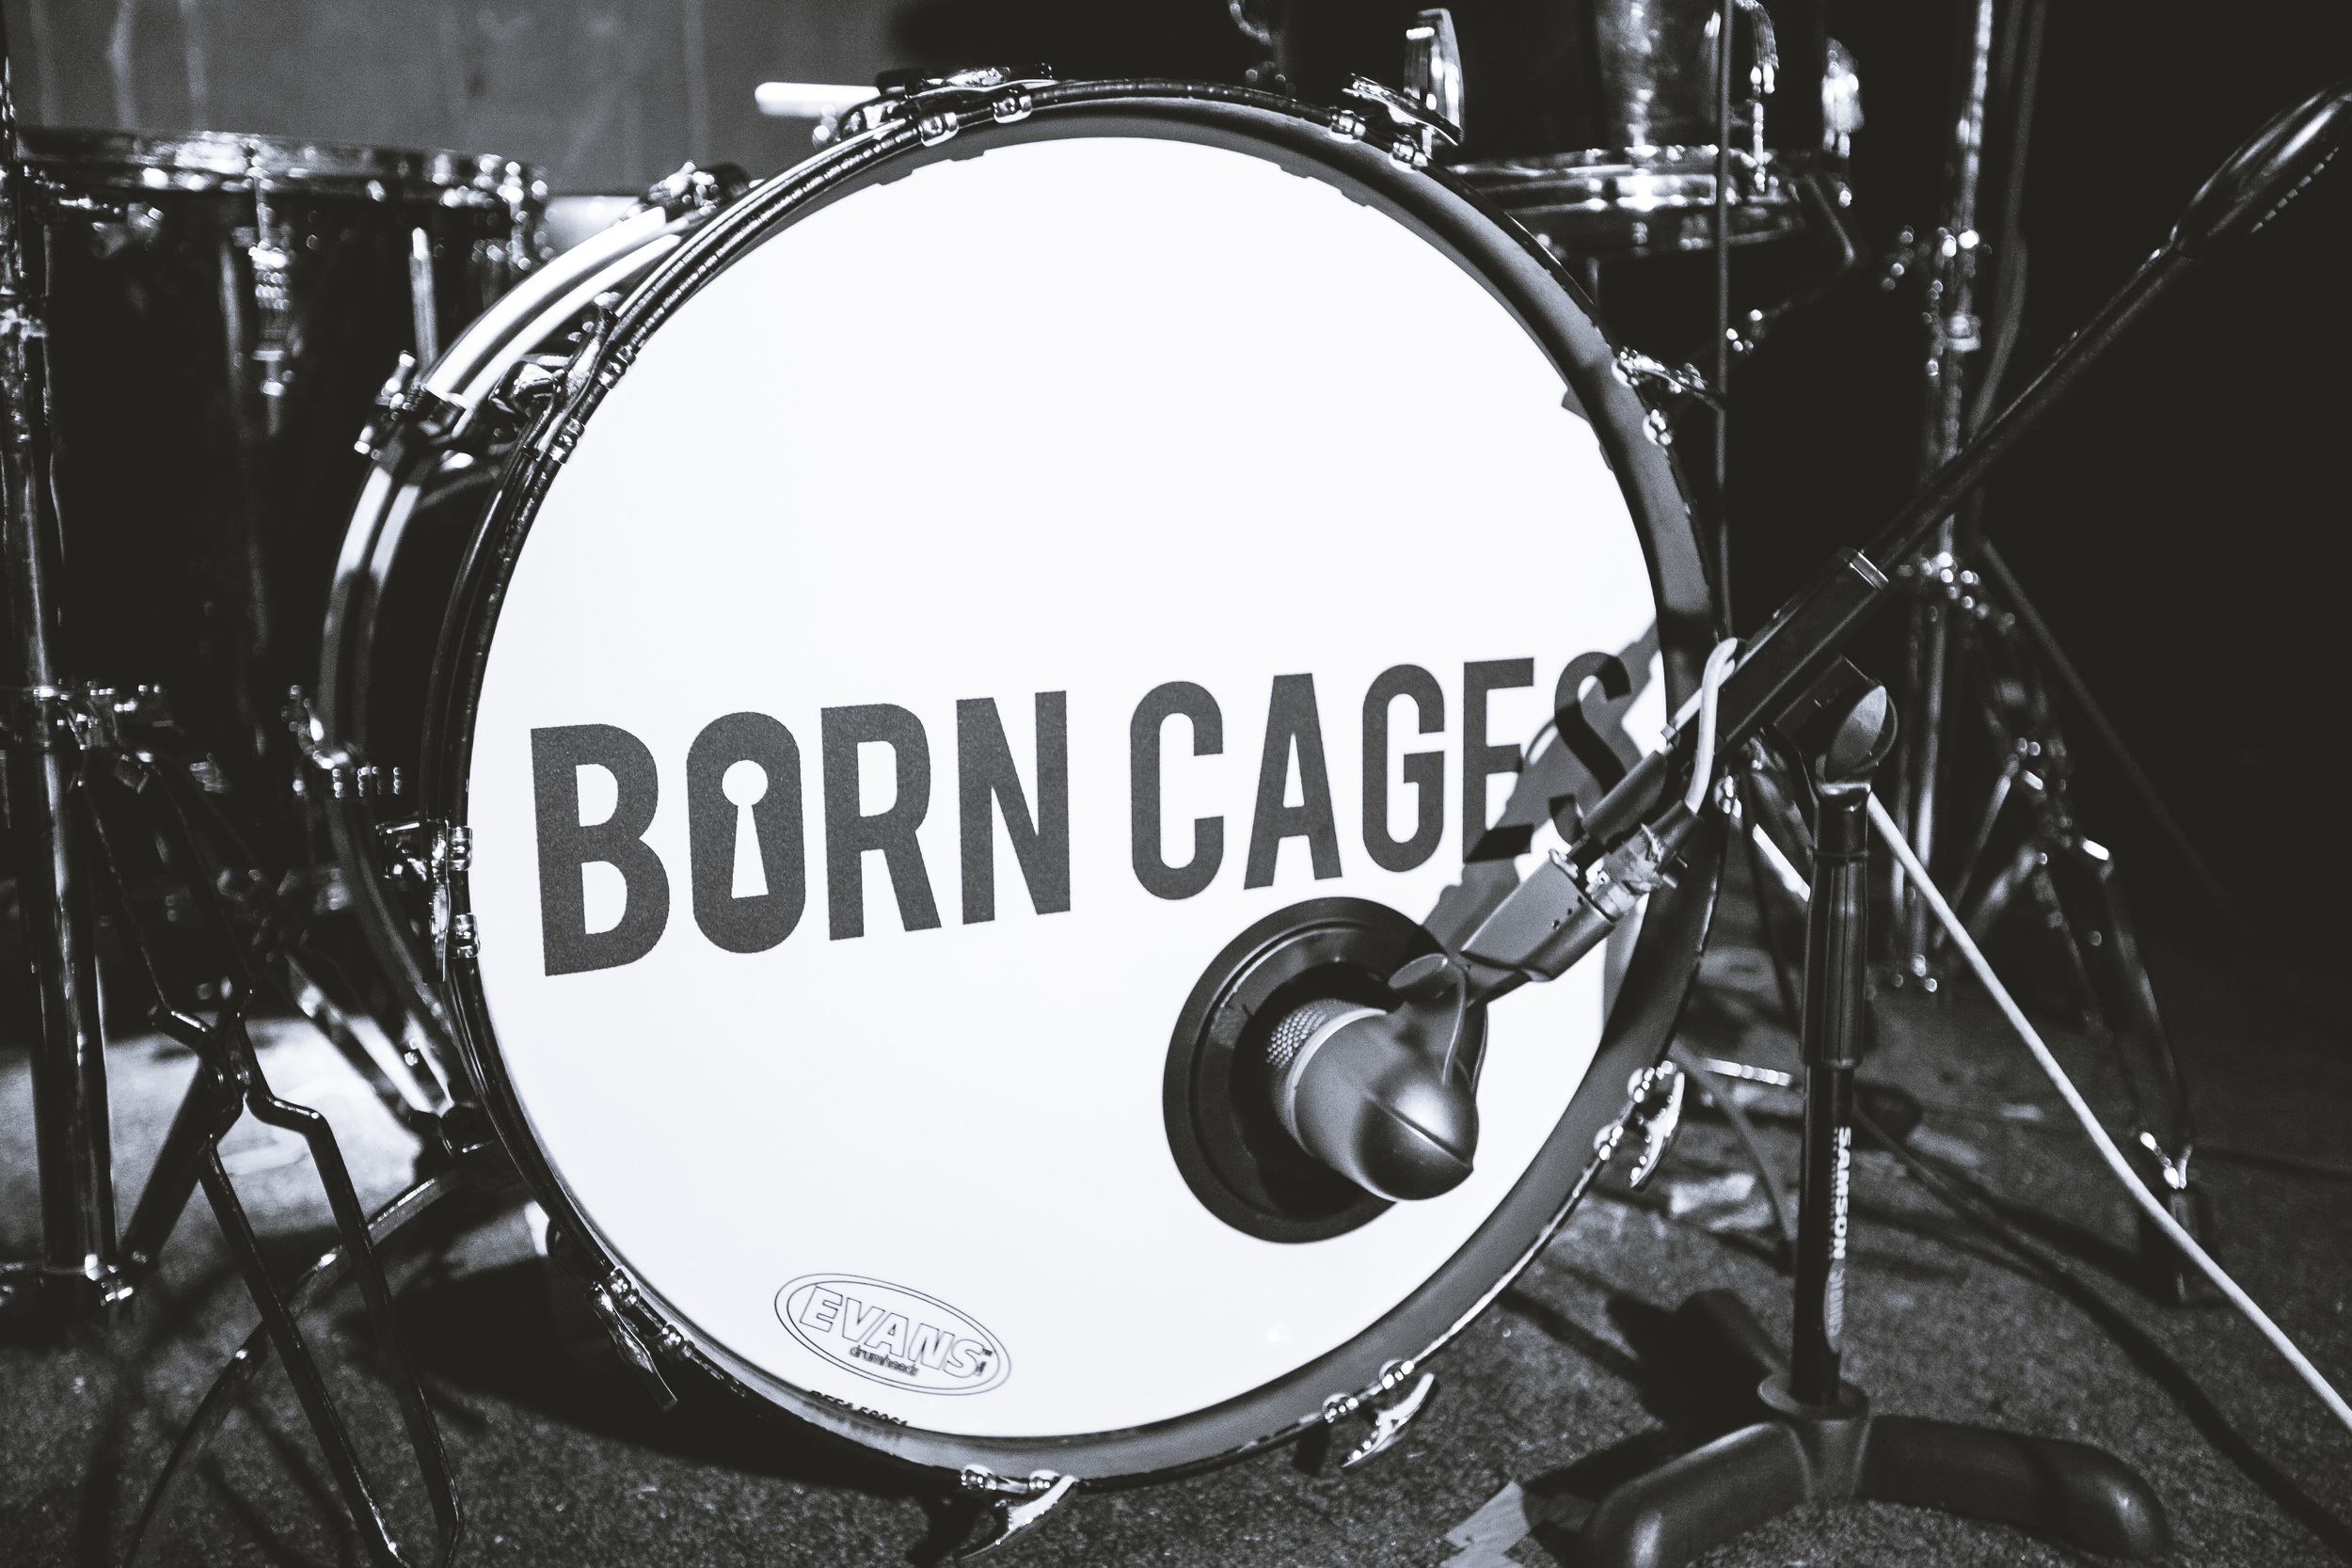 Born Cages - The Canal Club 3.4.15-28.jpg